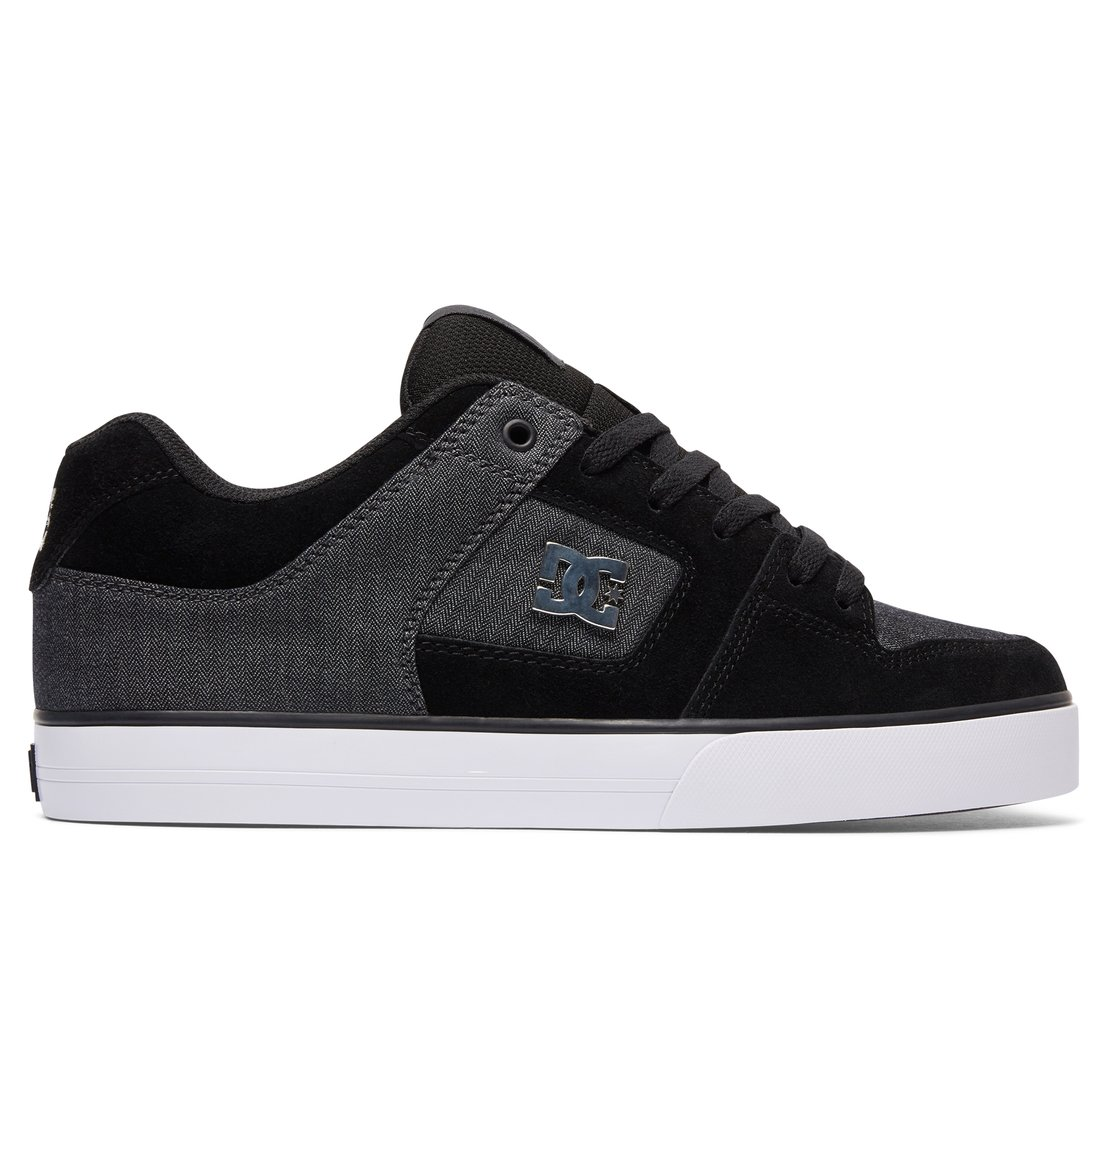 Pure SE - Baskets - Noir - DC Shoes oOk8JVVkXS